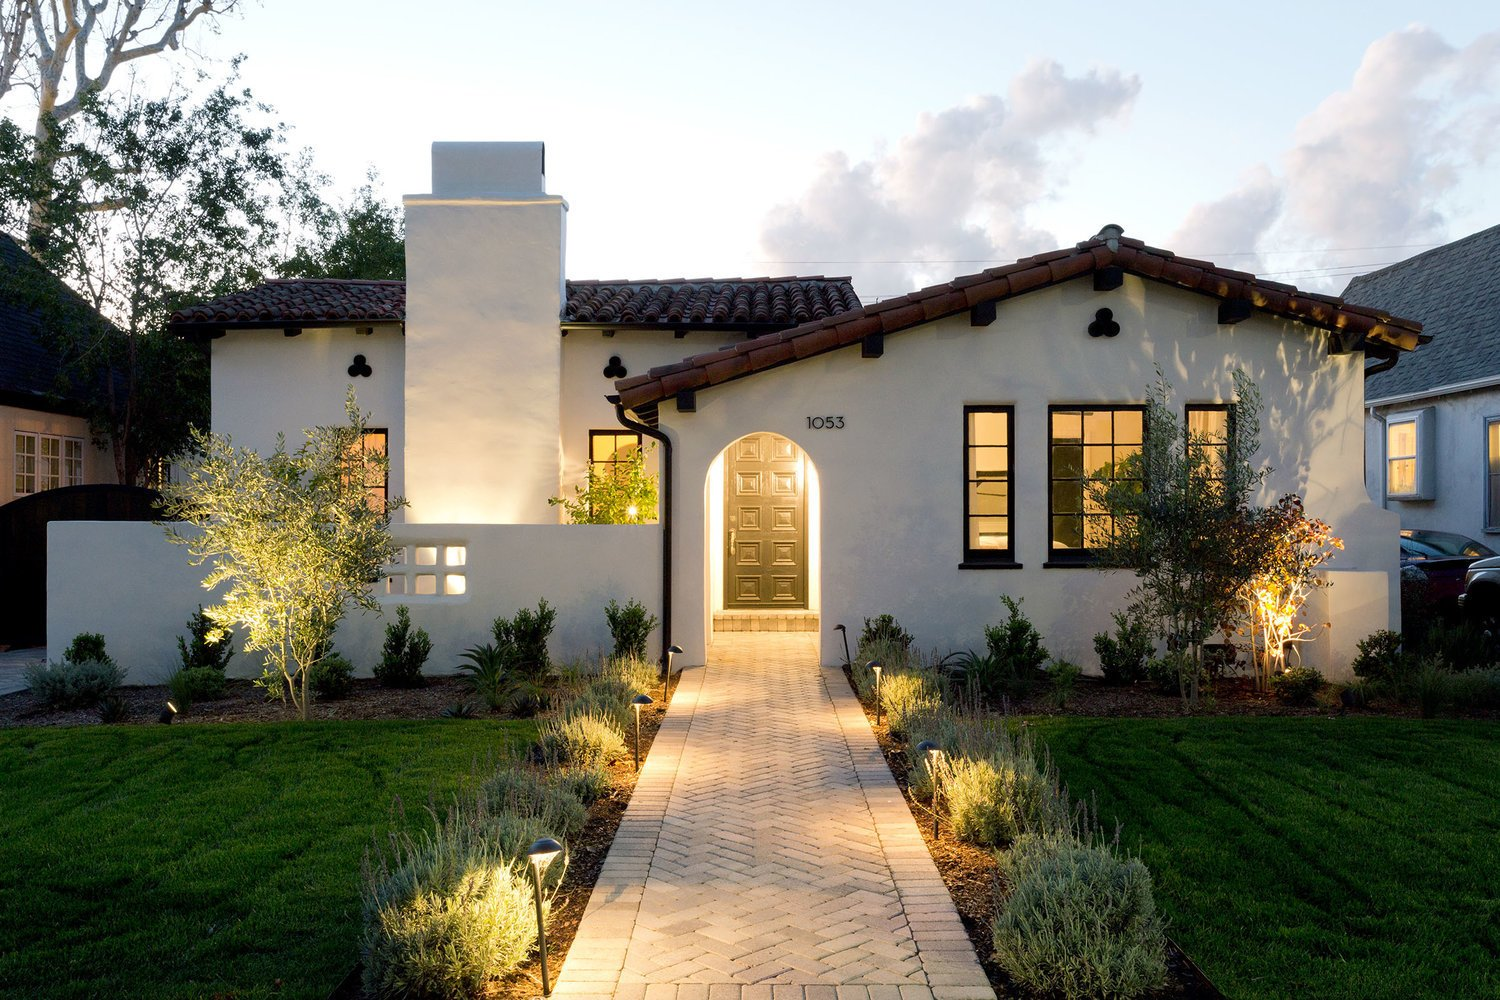 Tagged: Outdoor, Front Yard, Shrubs, Walkways, Grass, Landscape Lighting, and Small Patio, Porch, Deck.  Stearns Residence by Jette Creative